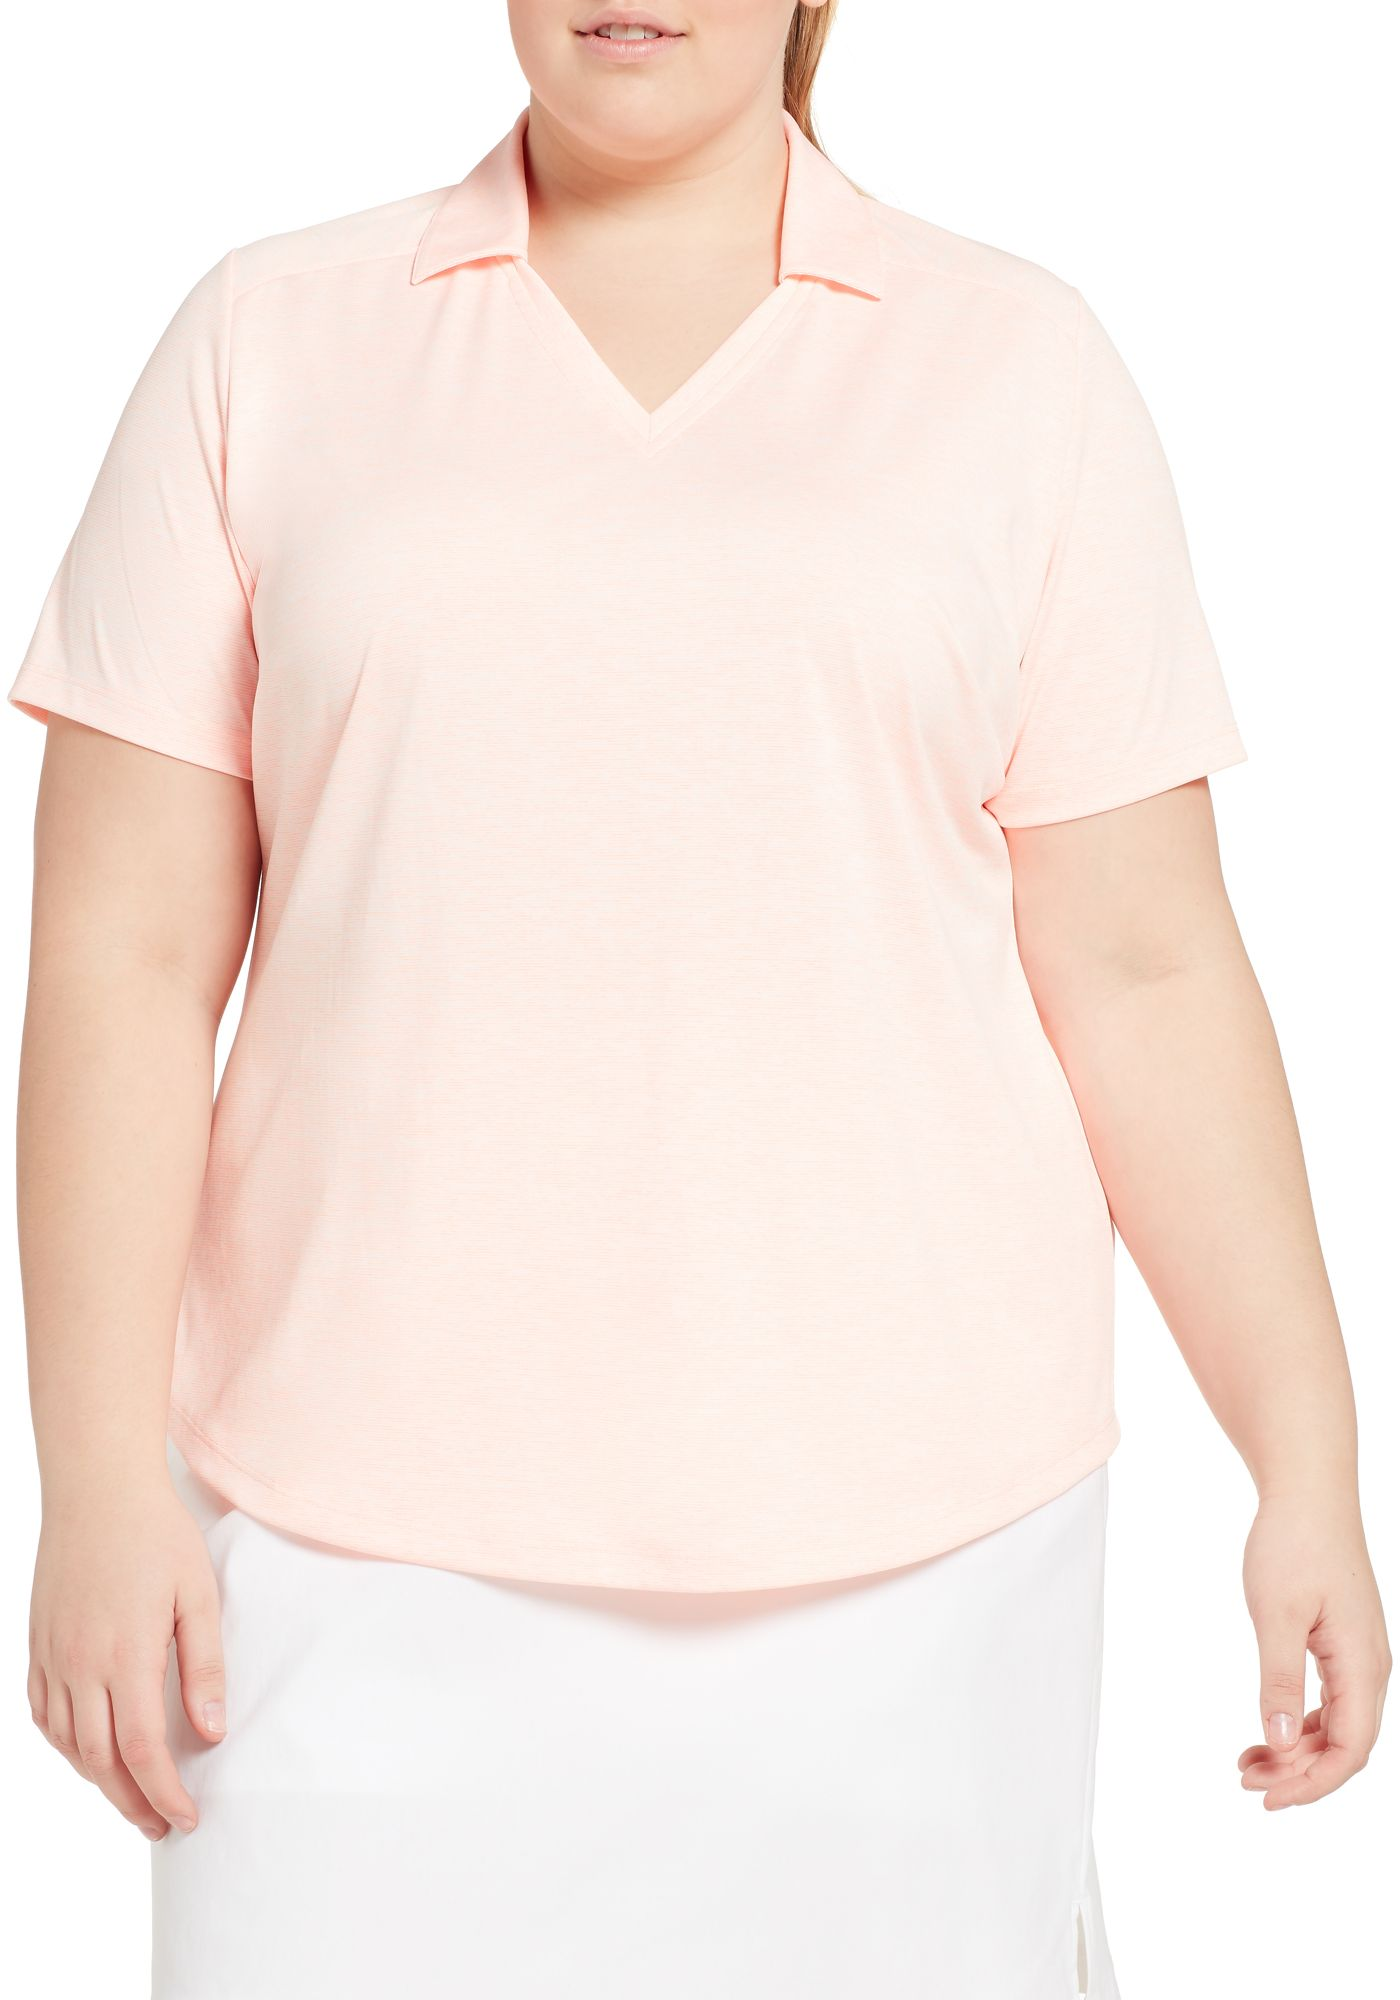 Lady Hagen Women's Spacer Textured Short Sleeve Golf Polo - Extended Sizes